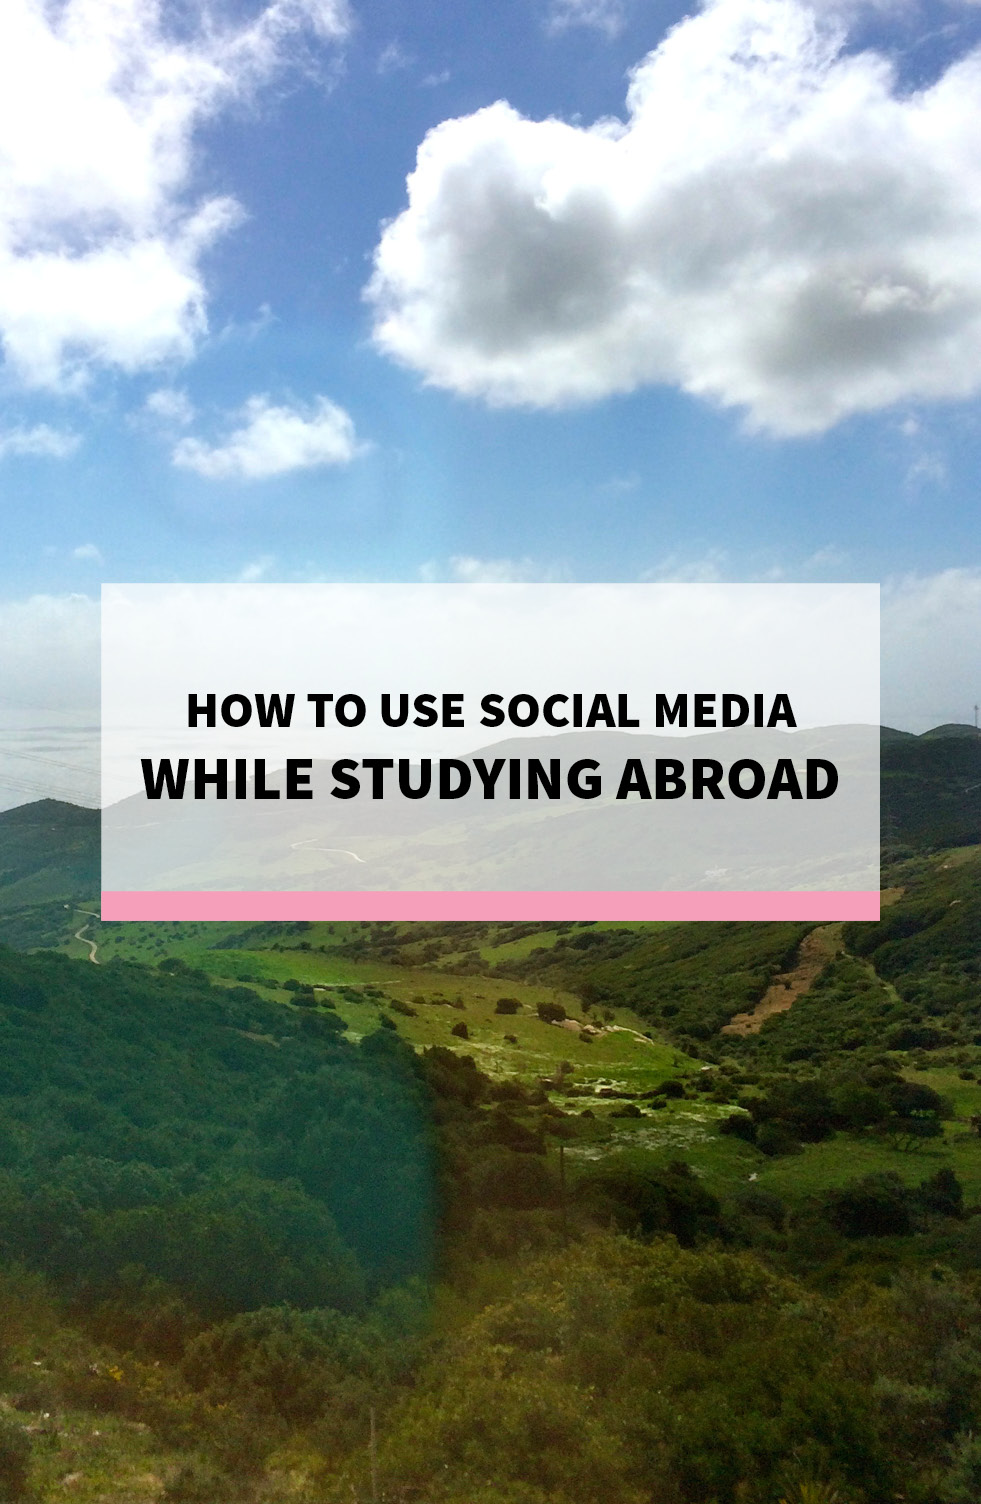 How to Use Social Media When Studying Abroad